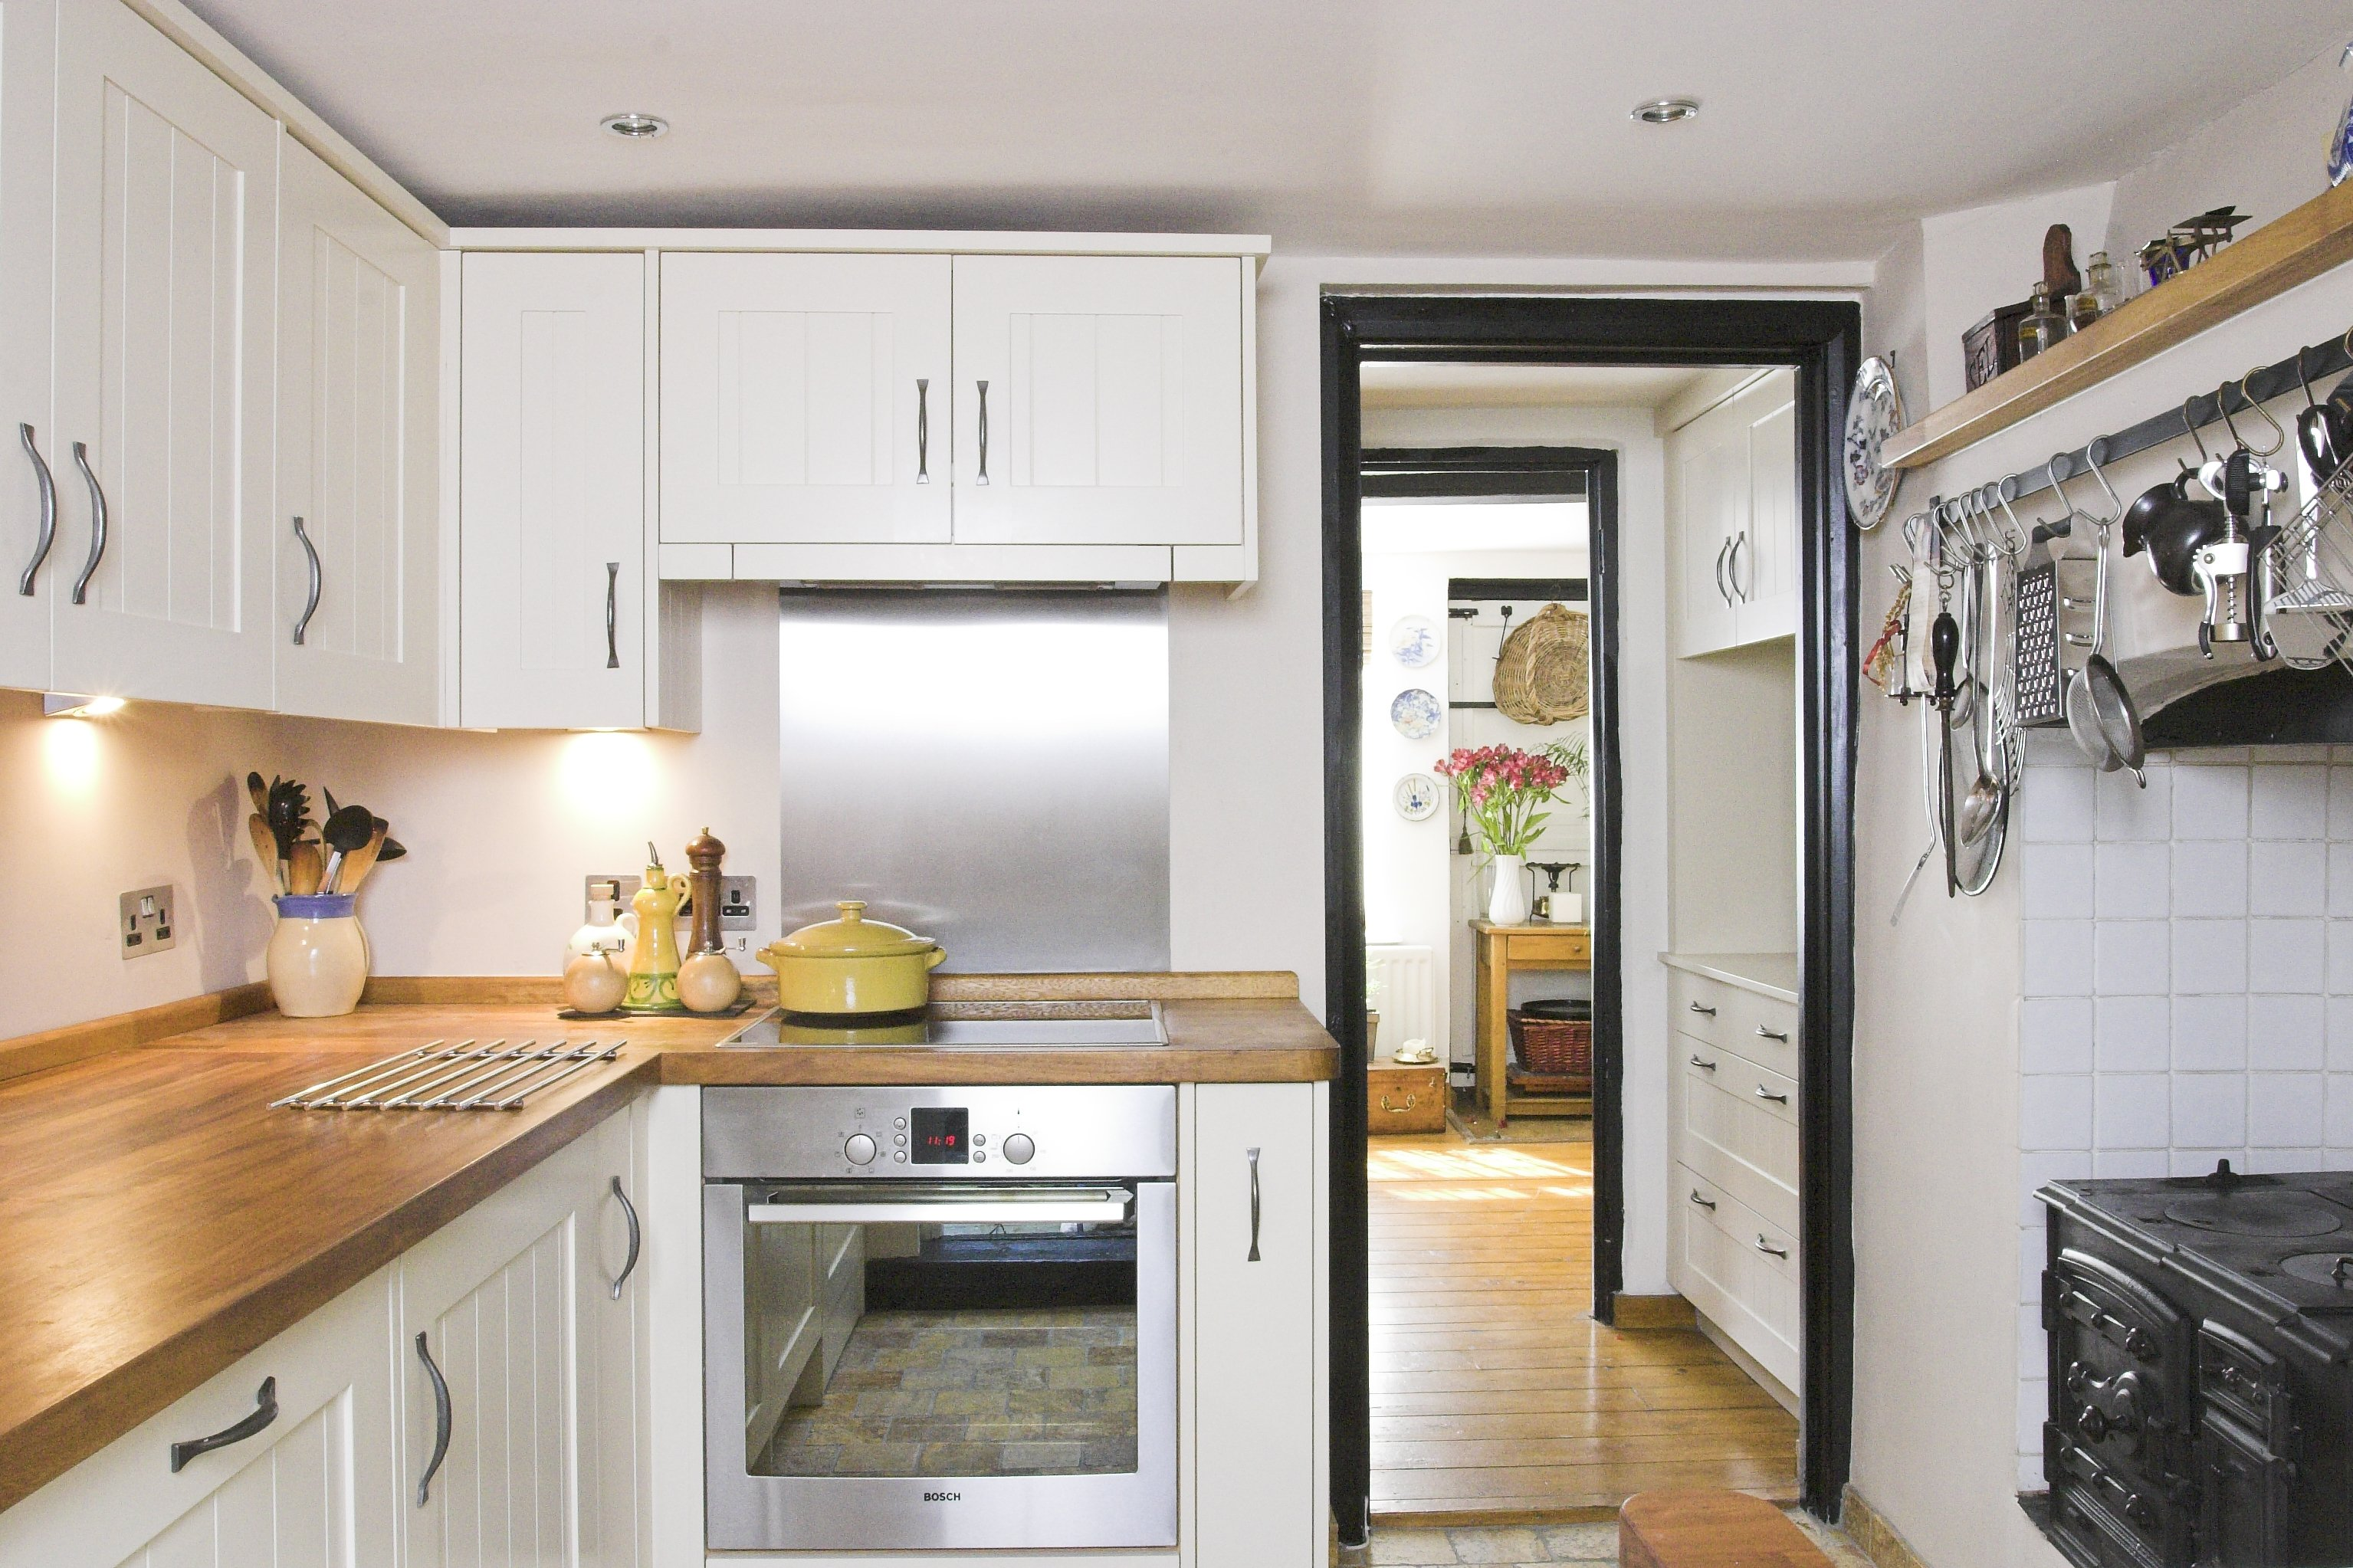 Traditional Kitchens Are Built To Suit The Style Of The House For Many  Years, If Not Centuries! A Professionally Designed Contemporary Kitchen  Will Stand ...